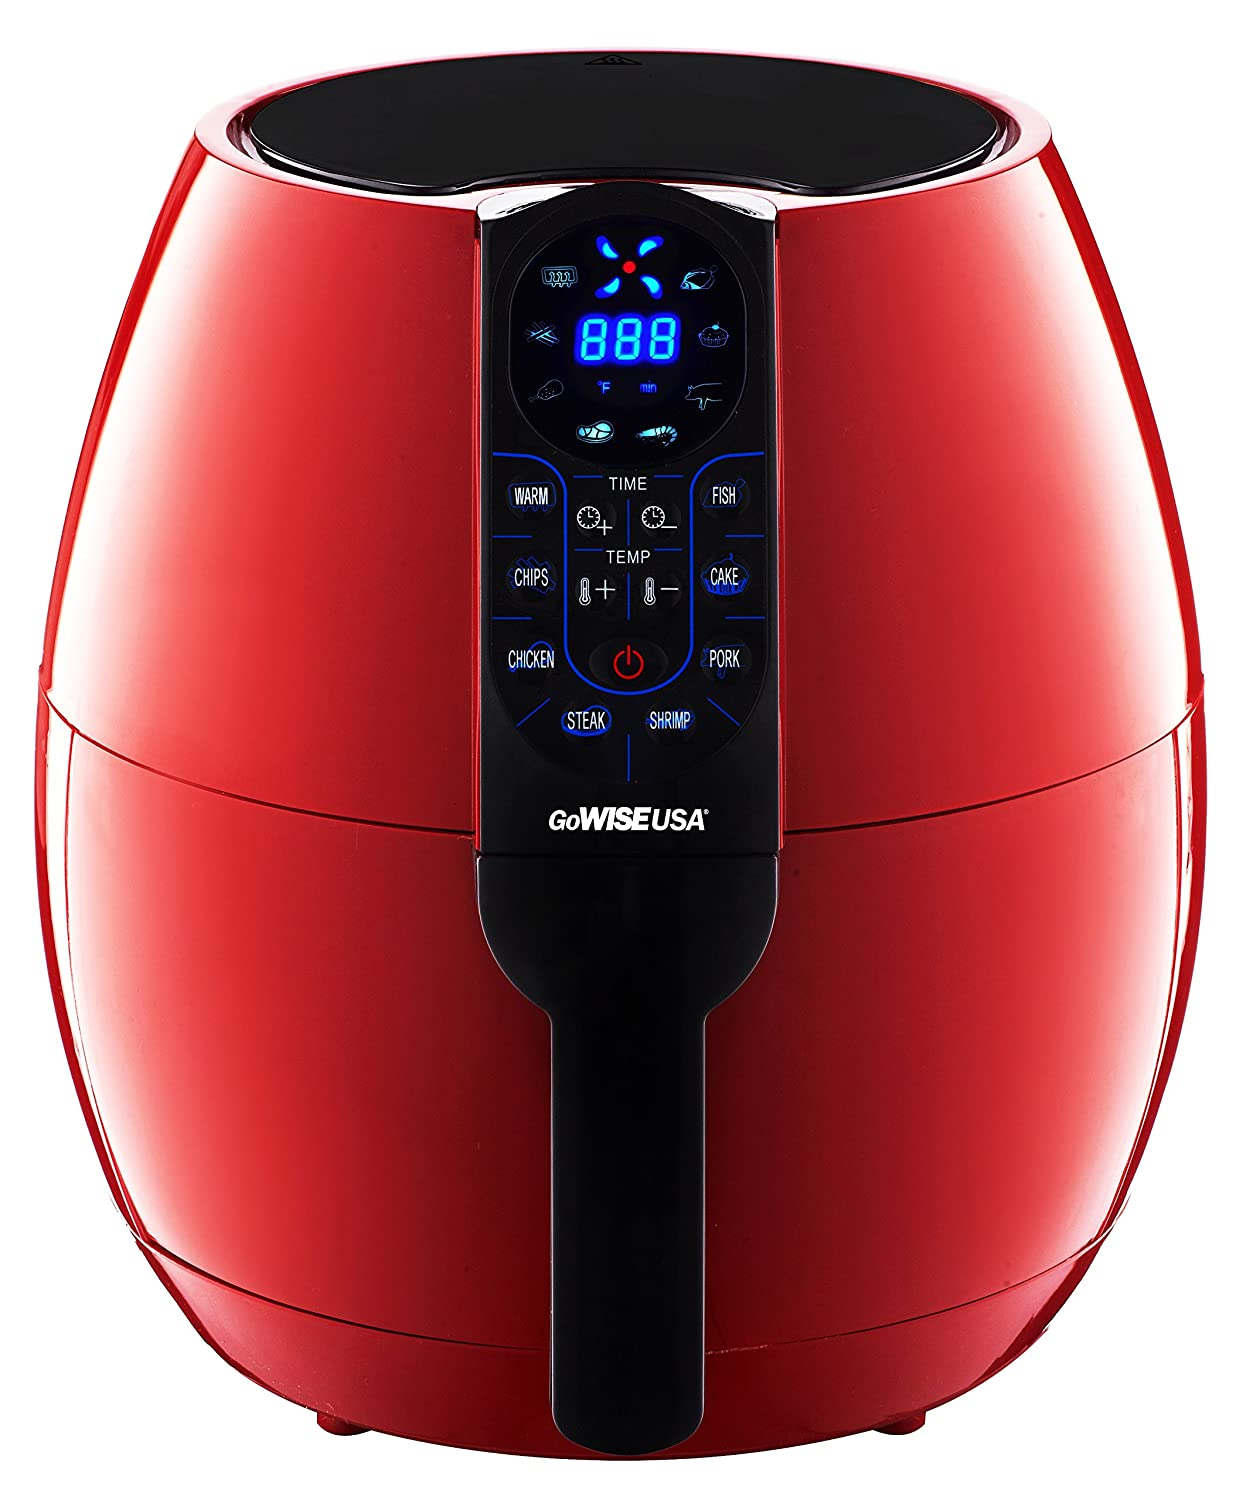 GoWISE USA GW22639 8-in-1 Electric Air Fryer Digital Programmable Cooking Settings 3.7 Qt, Chili Red